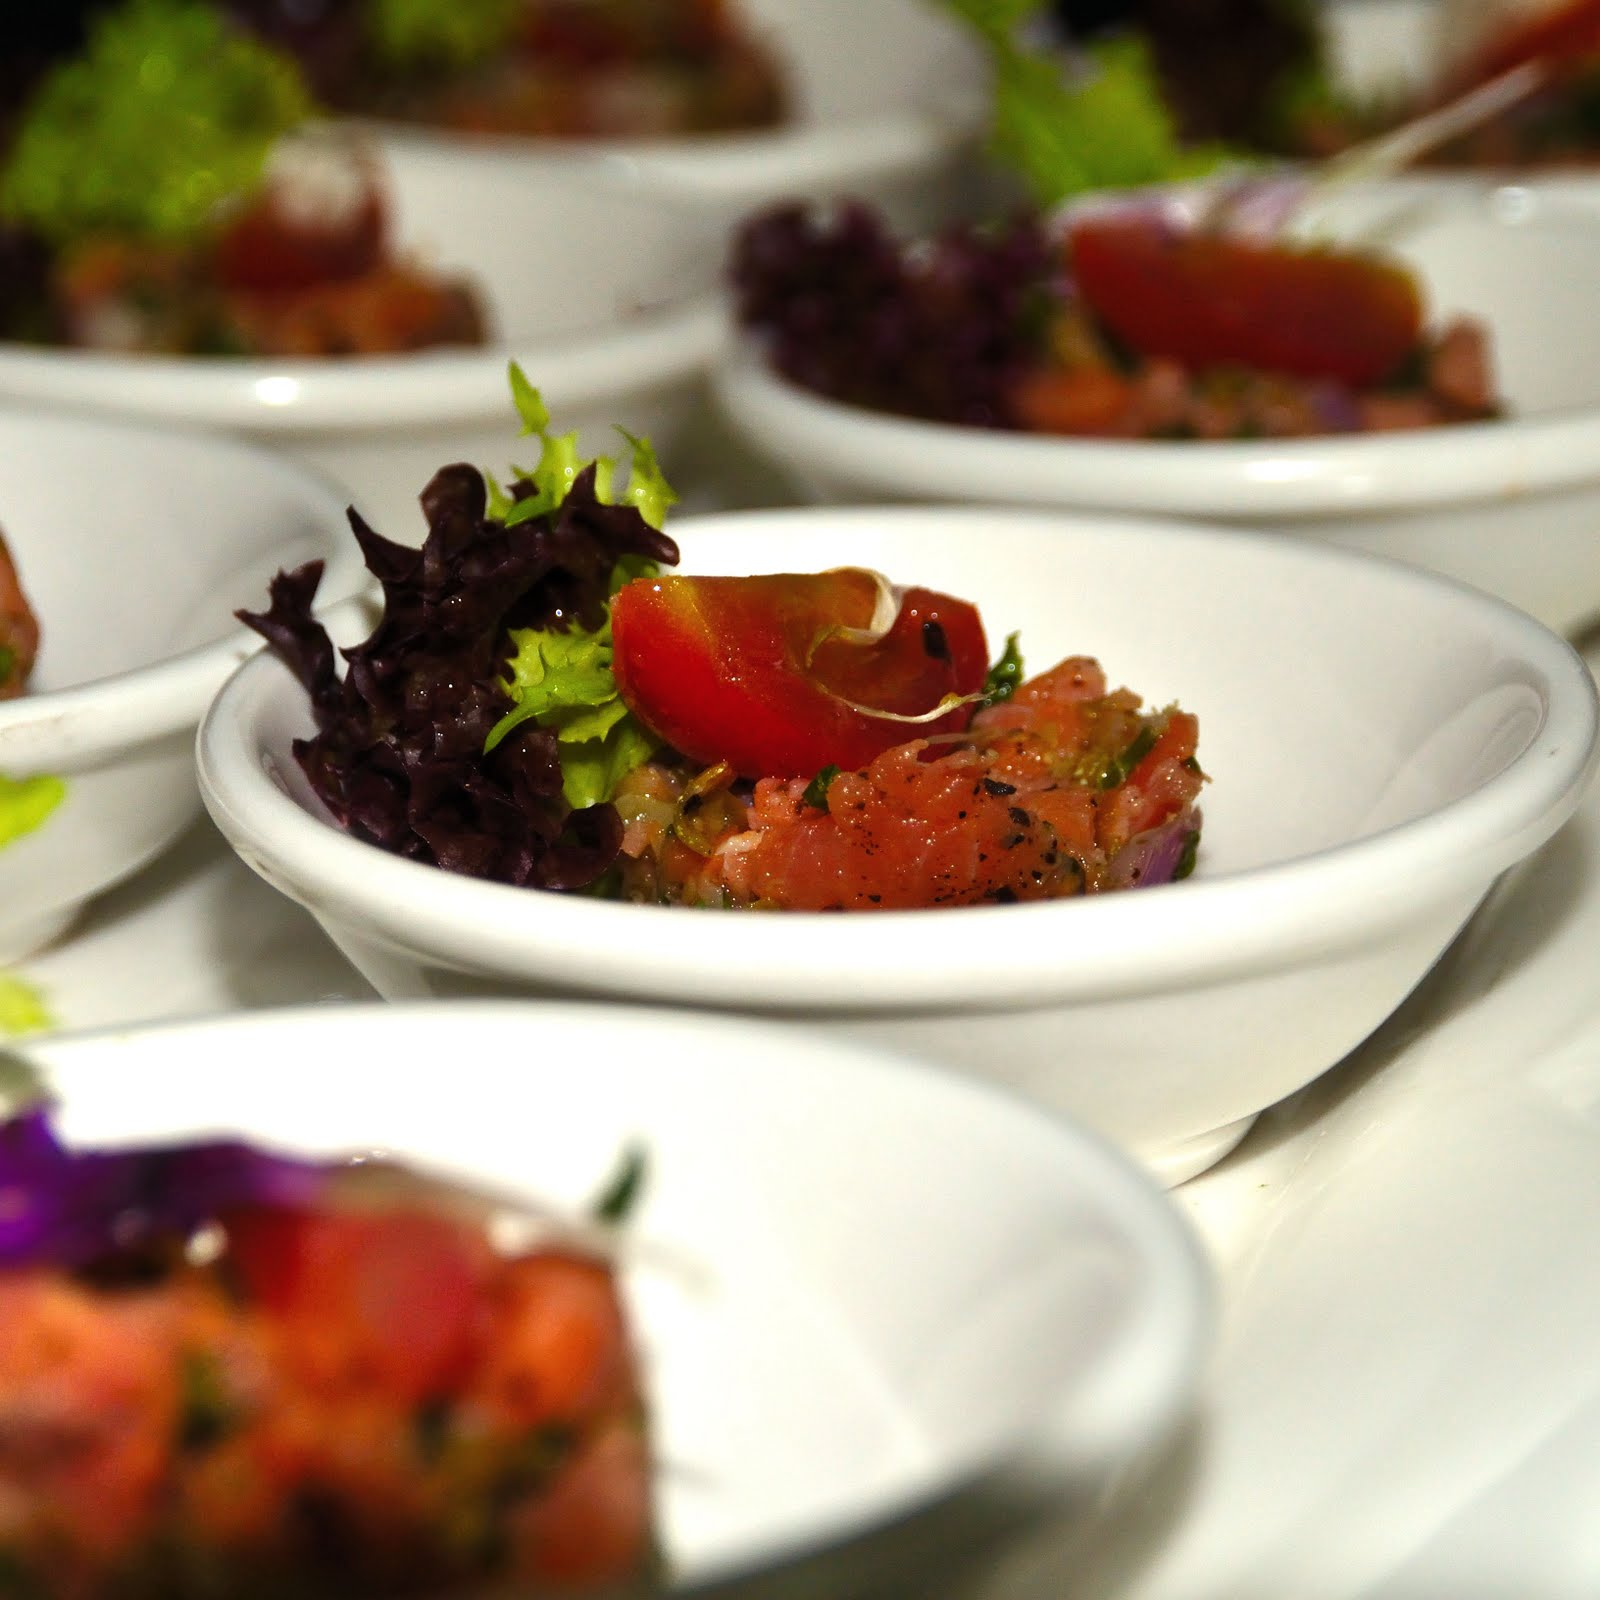 Art of culinary january 2012 for Smoked salmon roulade canape